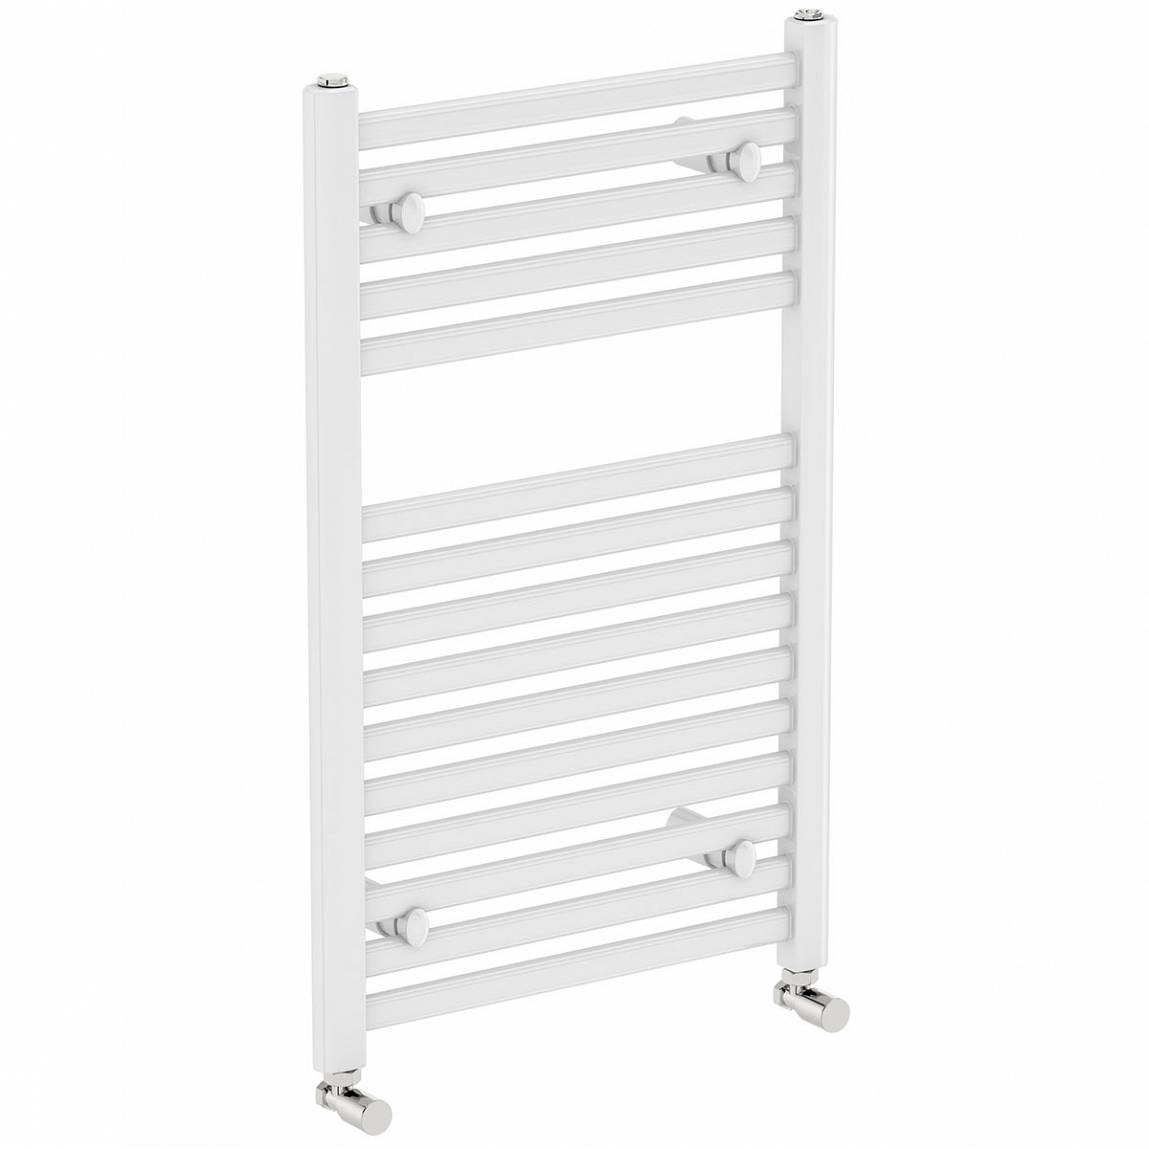 Image of White Heated Towel Rail 800 x 500 PLUS Valves